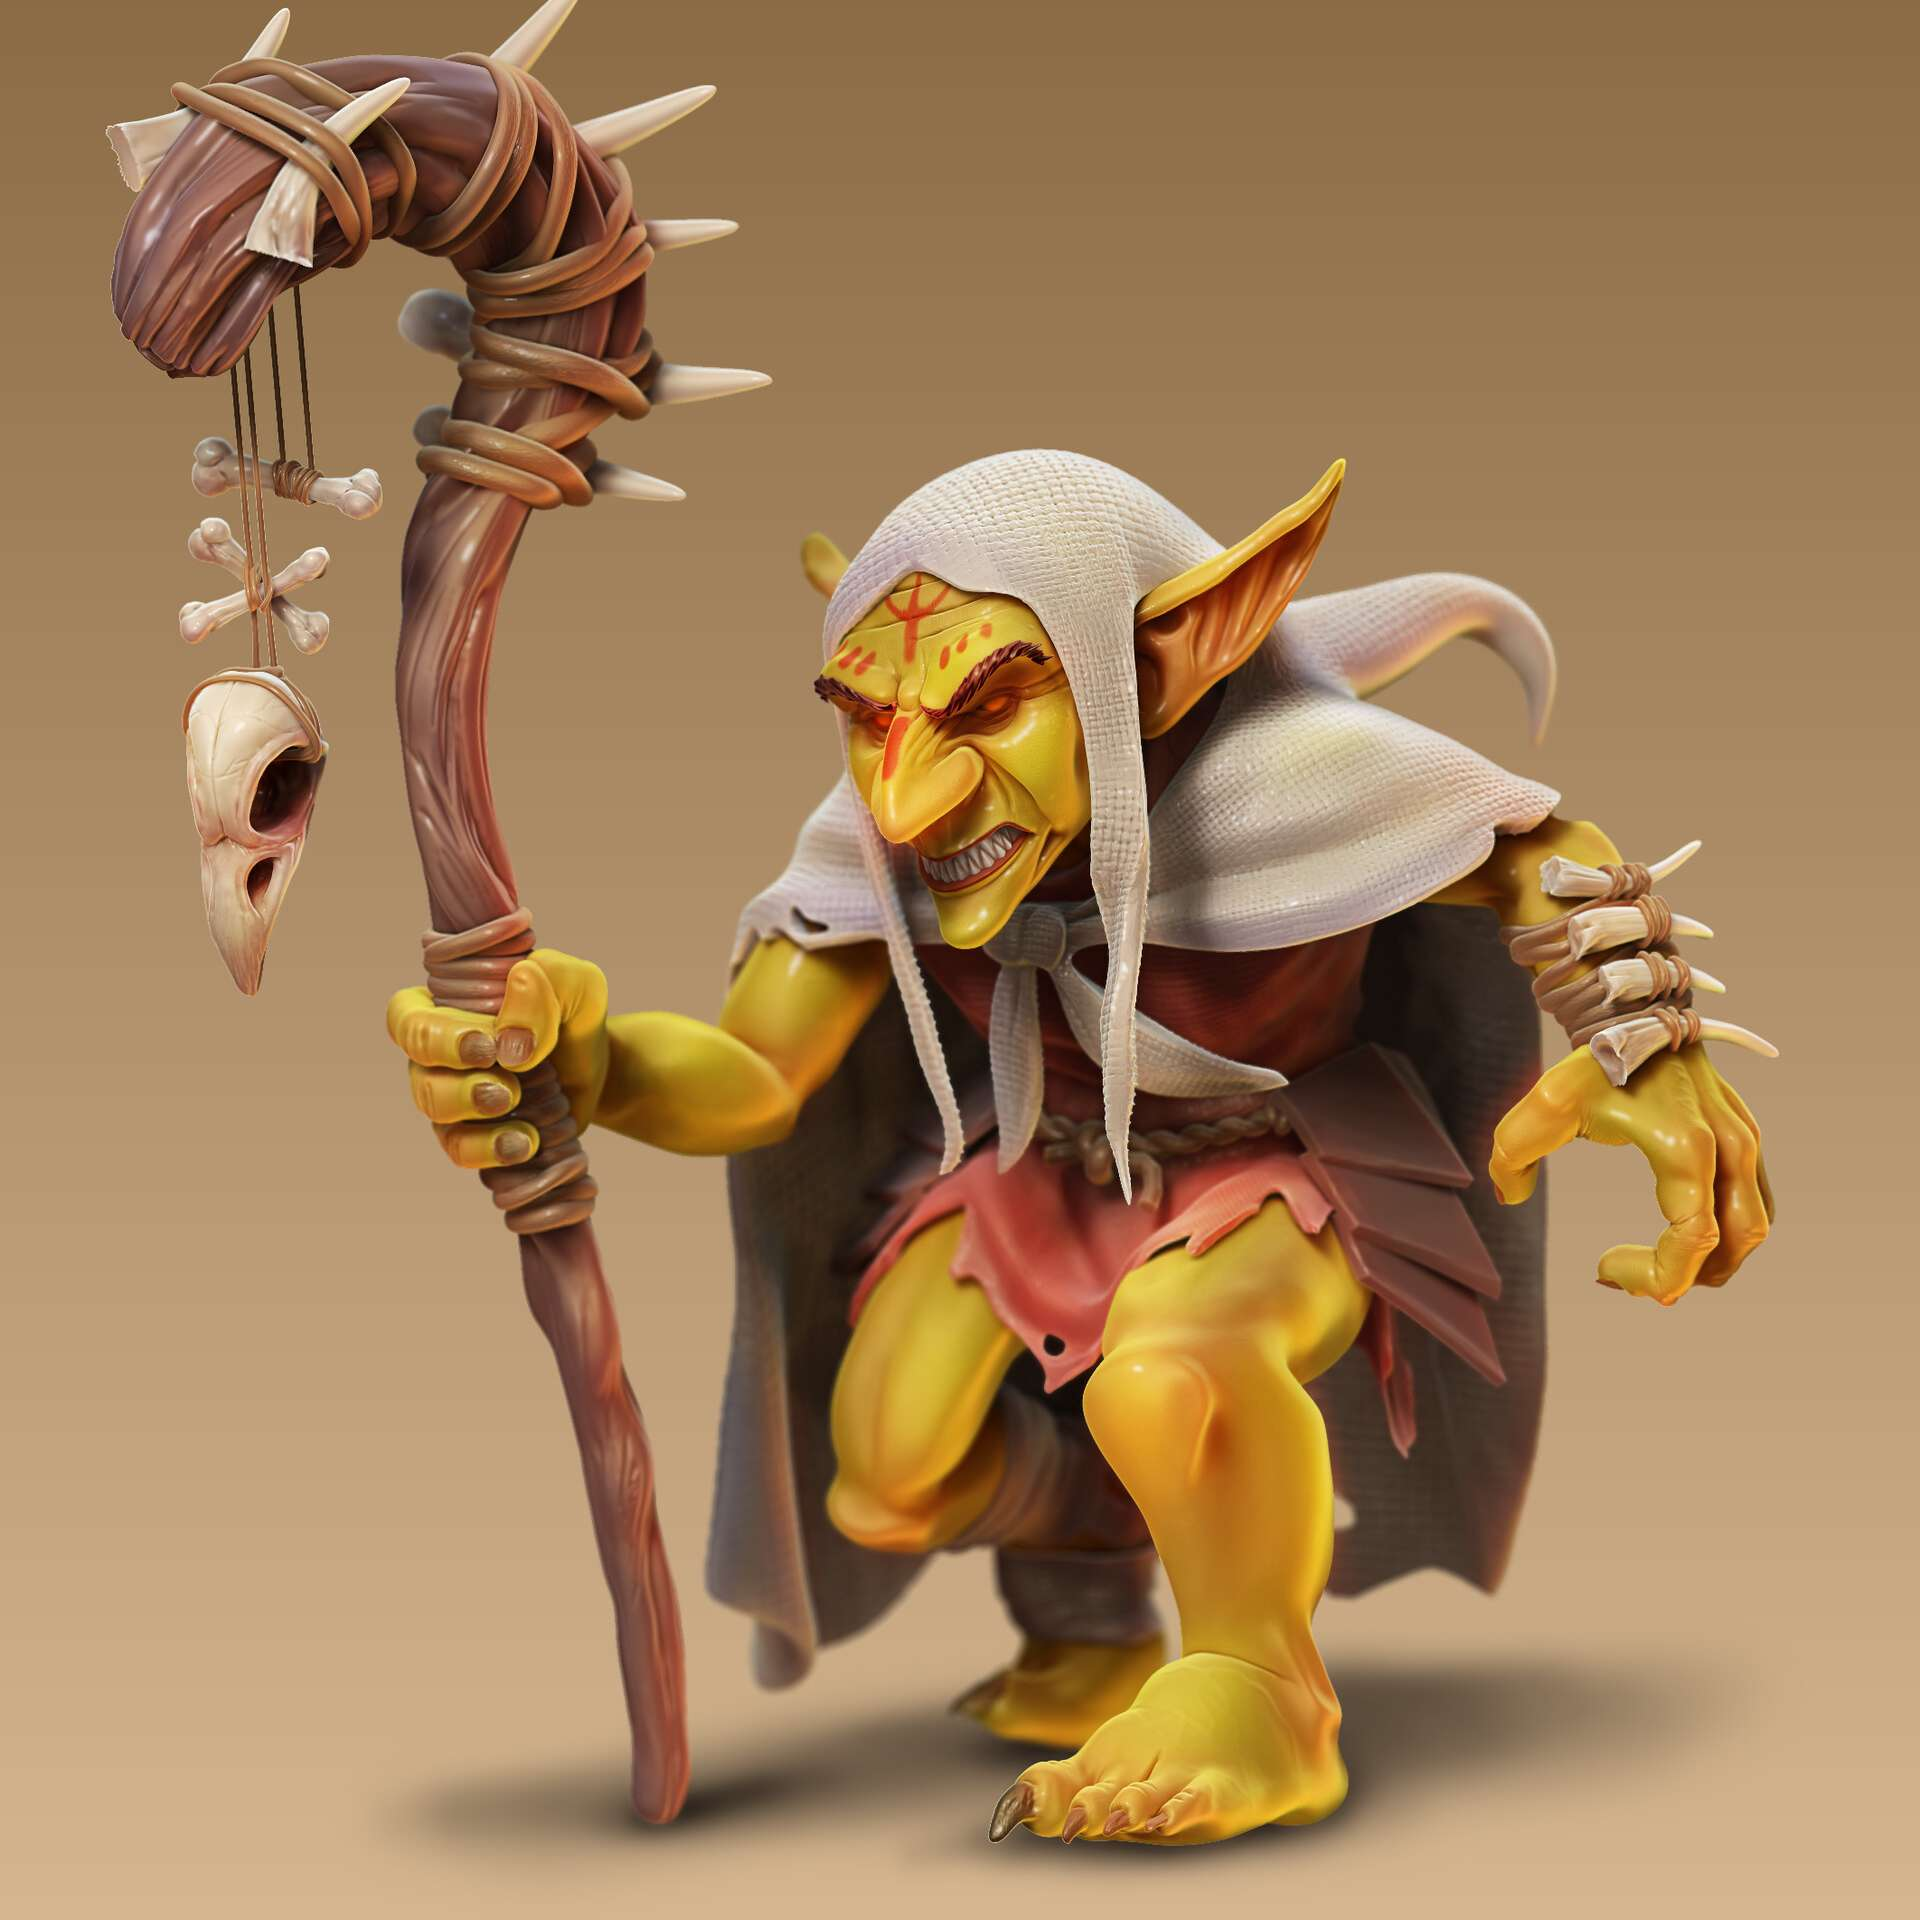 Goblin - Miniature for RPG Goblin 33mm - The best files for 3D printing in the world. Stl models divided into parts to facilitate 3D printing. All kinds of characters, decoration, cosplay, prosthetics, pieces. Quality in 3D printing. Affordable 3D models. Low cost. Collective purchases of 3D files.